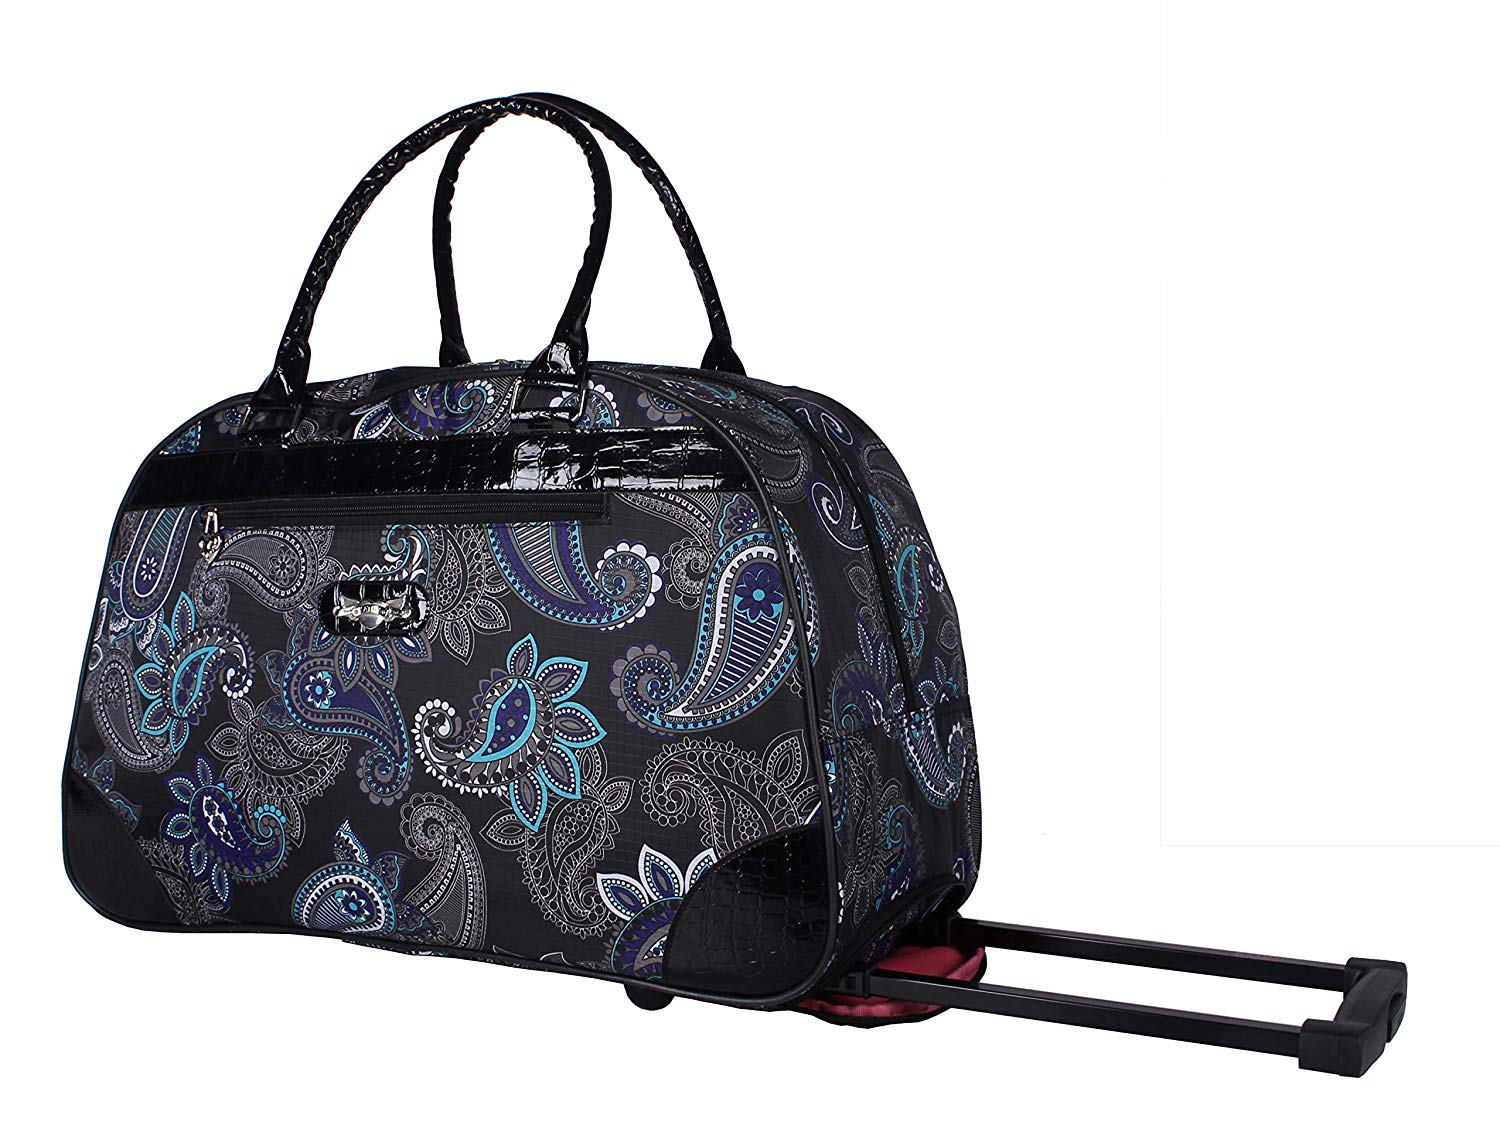 dff49ec329e7 Get Quotations · Kathy Van Zeeland Luggage 22 Inch Rolling Carry On Printed  Wheeled Duffel (Diva Black